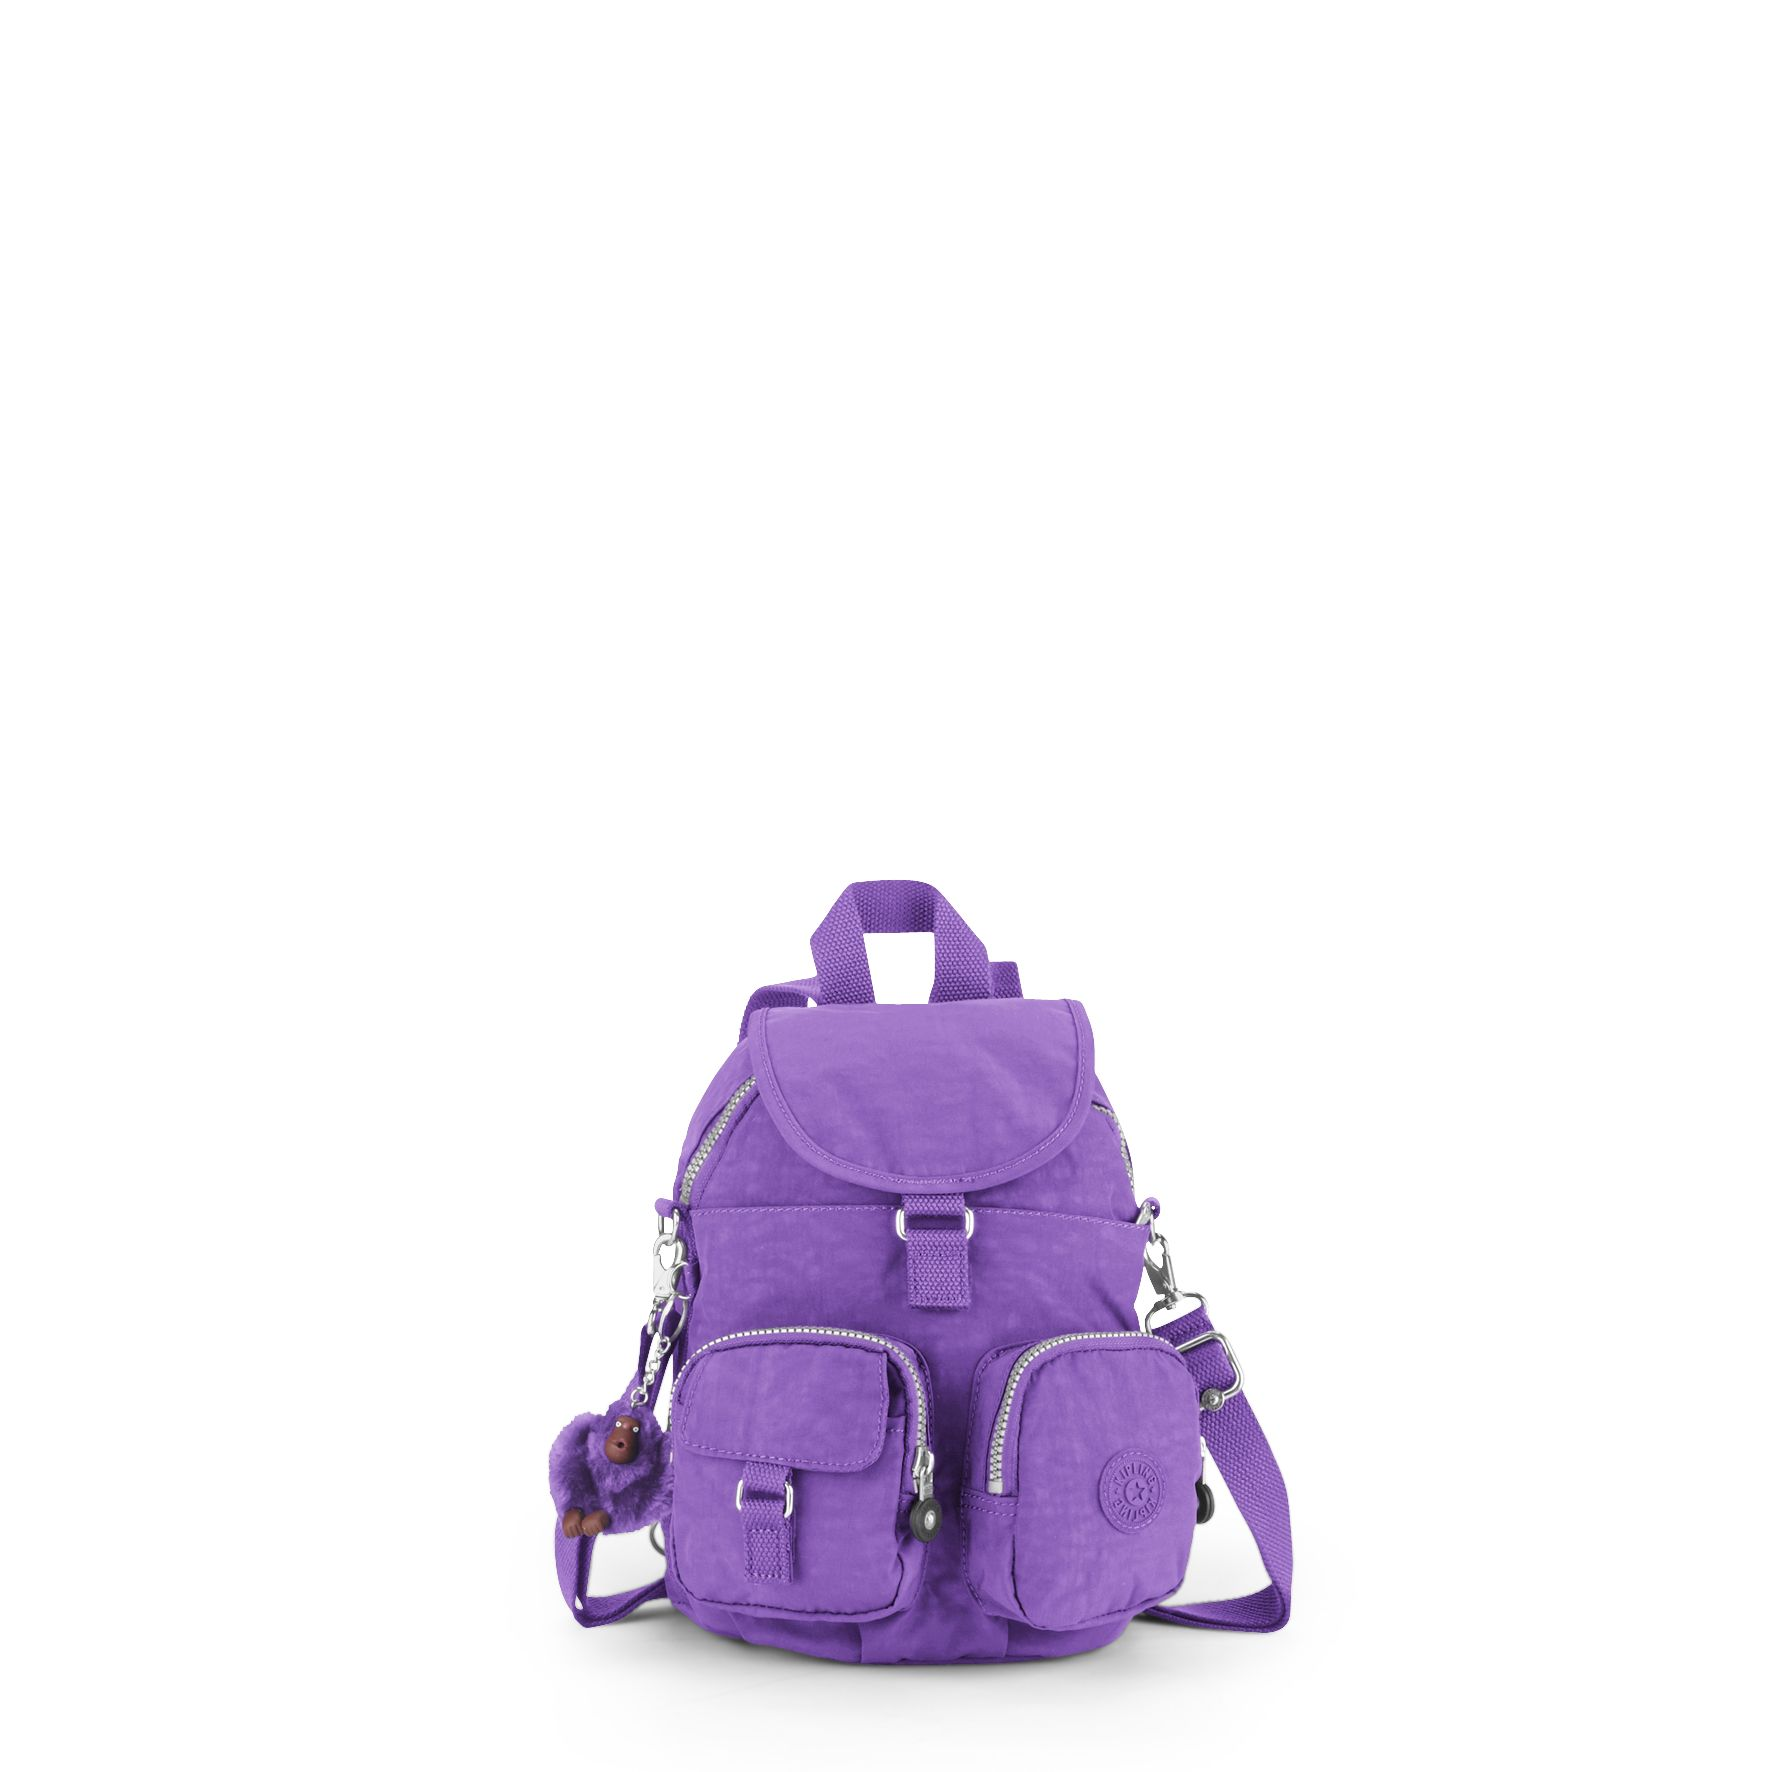 Firefly medium backpack